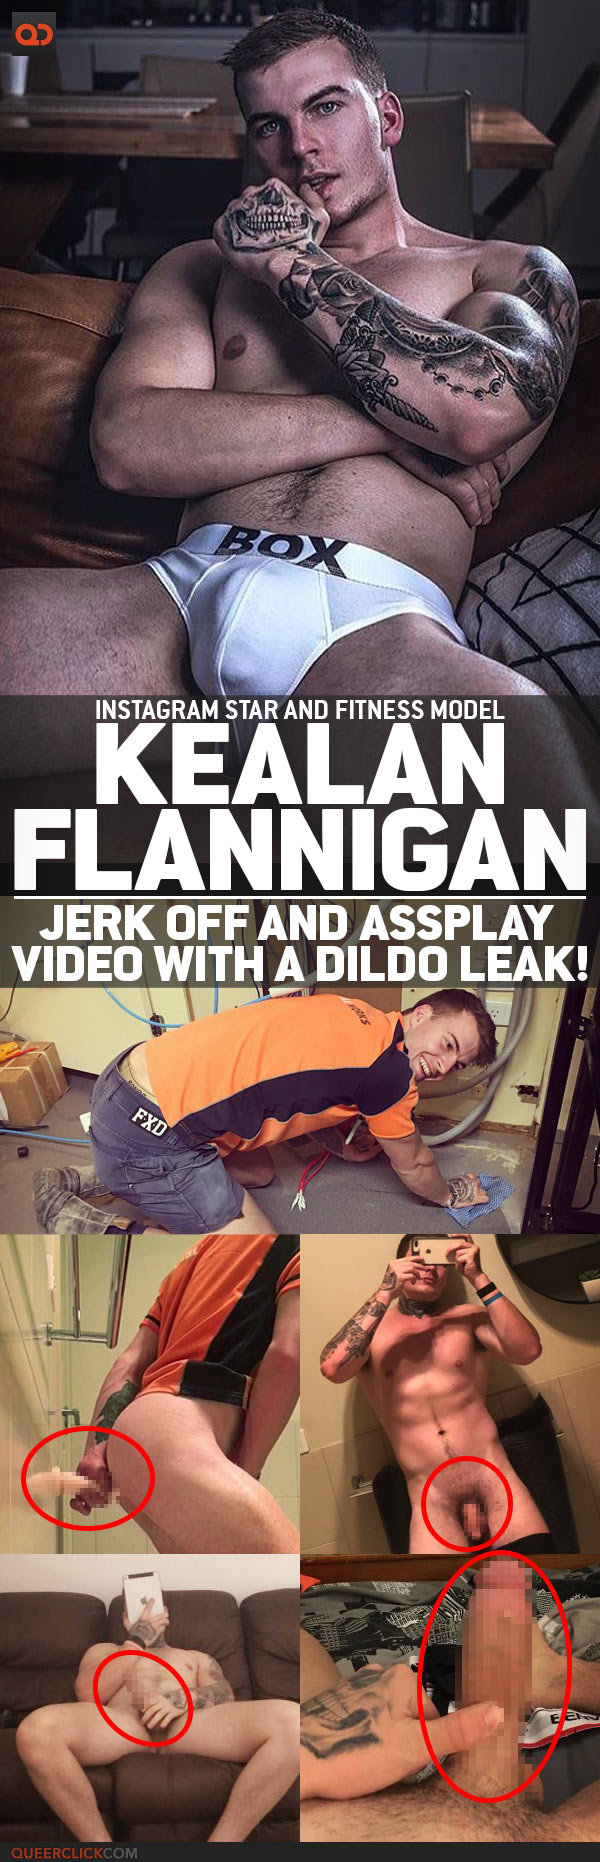 Kealan Flannigan, Instagram Star And Fitness Model, Jerk Off And Assplay Video With A Dildo Leak!